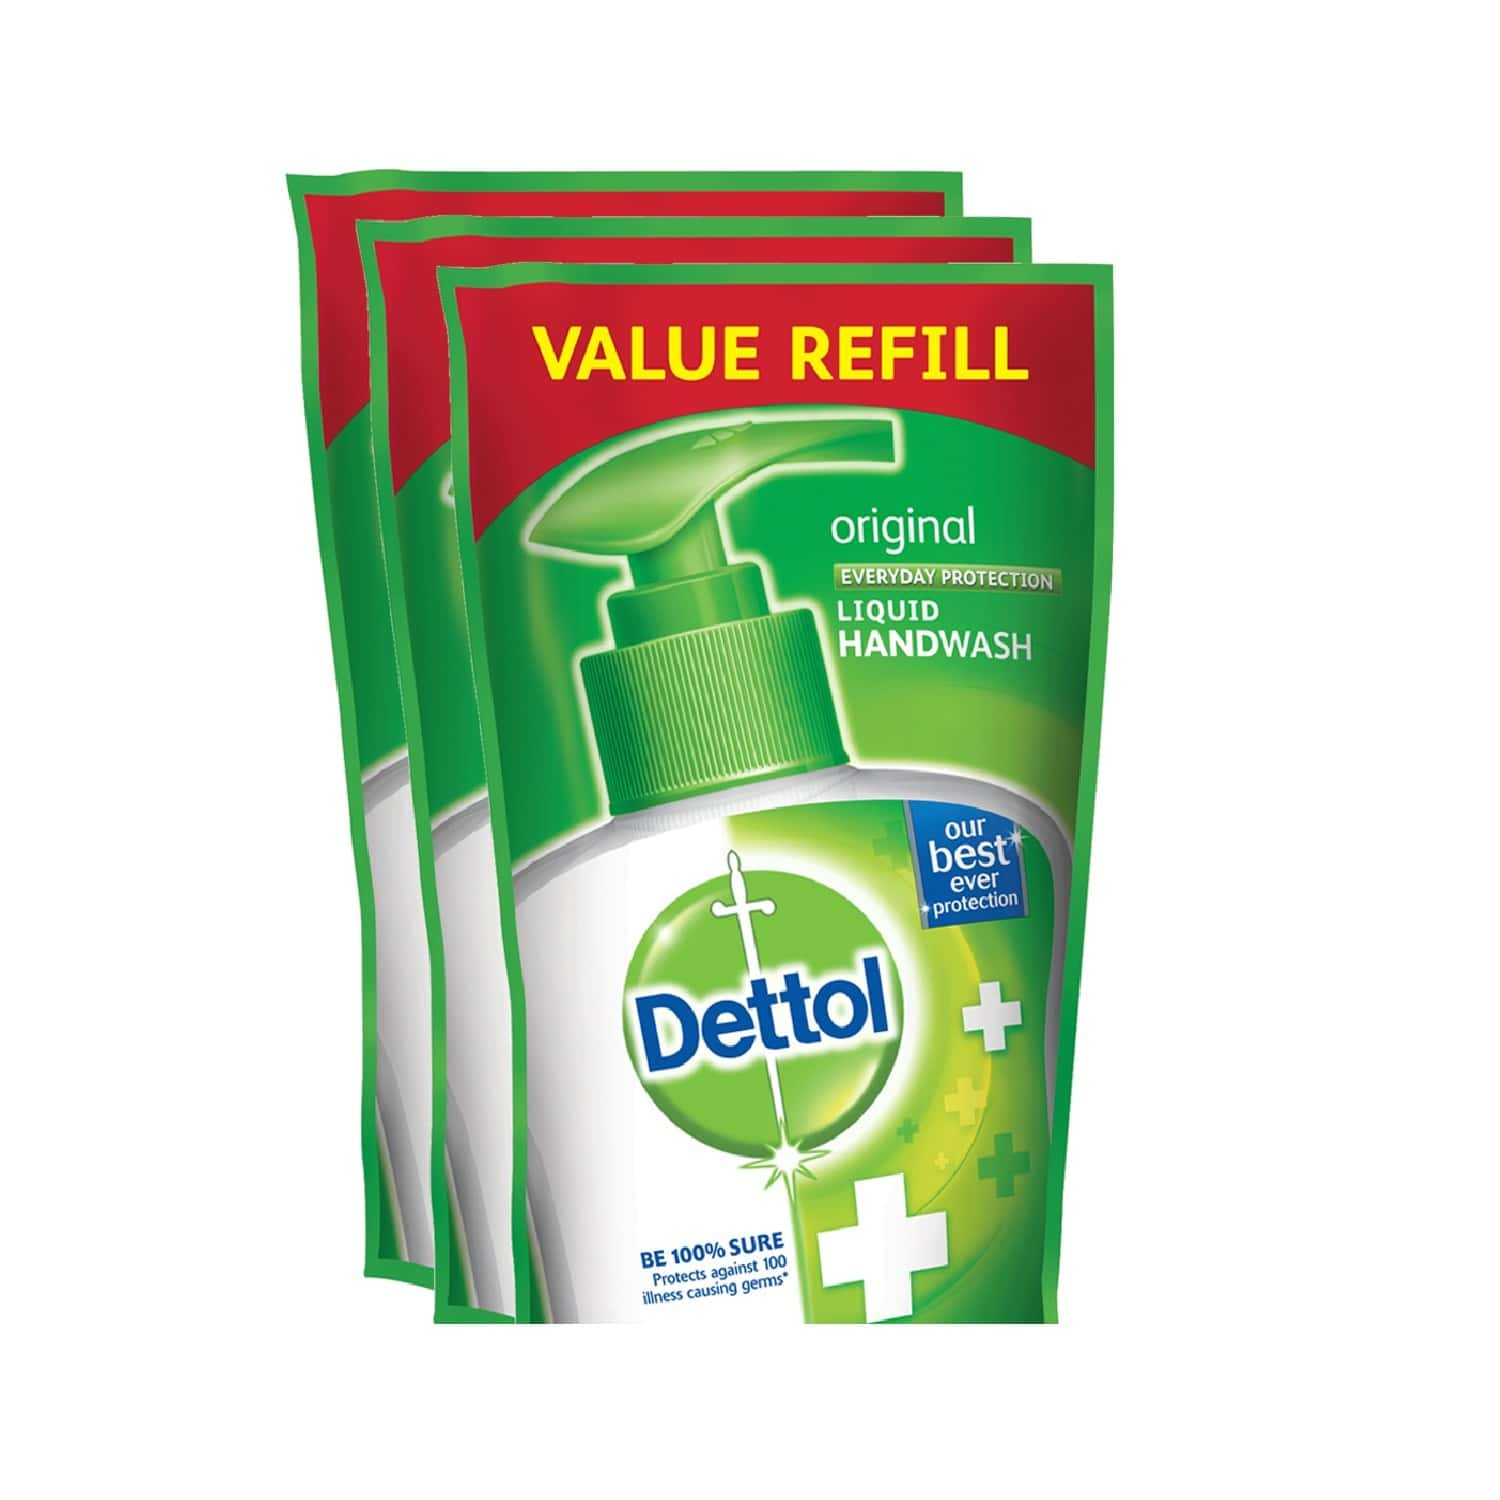 Dettol Germ Protection Original Handwash Refill Of 175 Ml (pack Of 3)